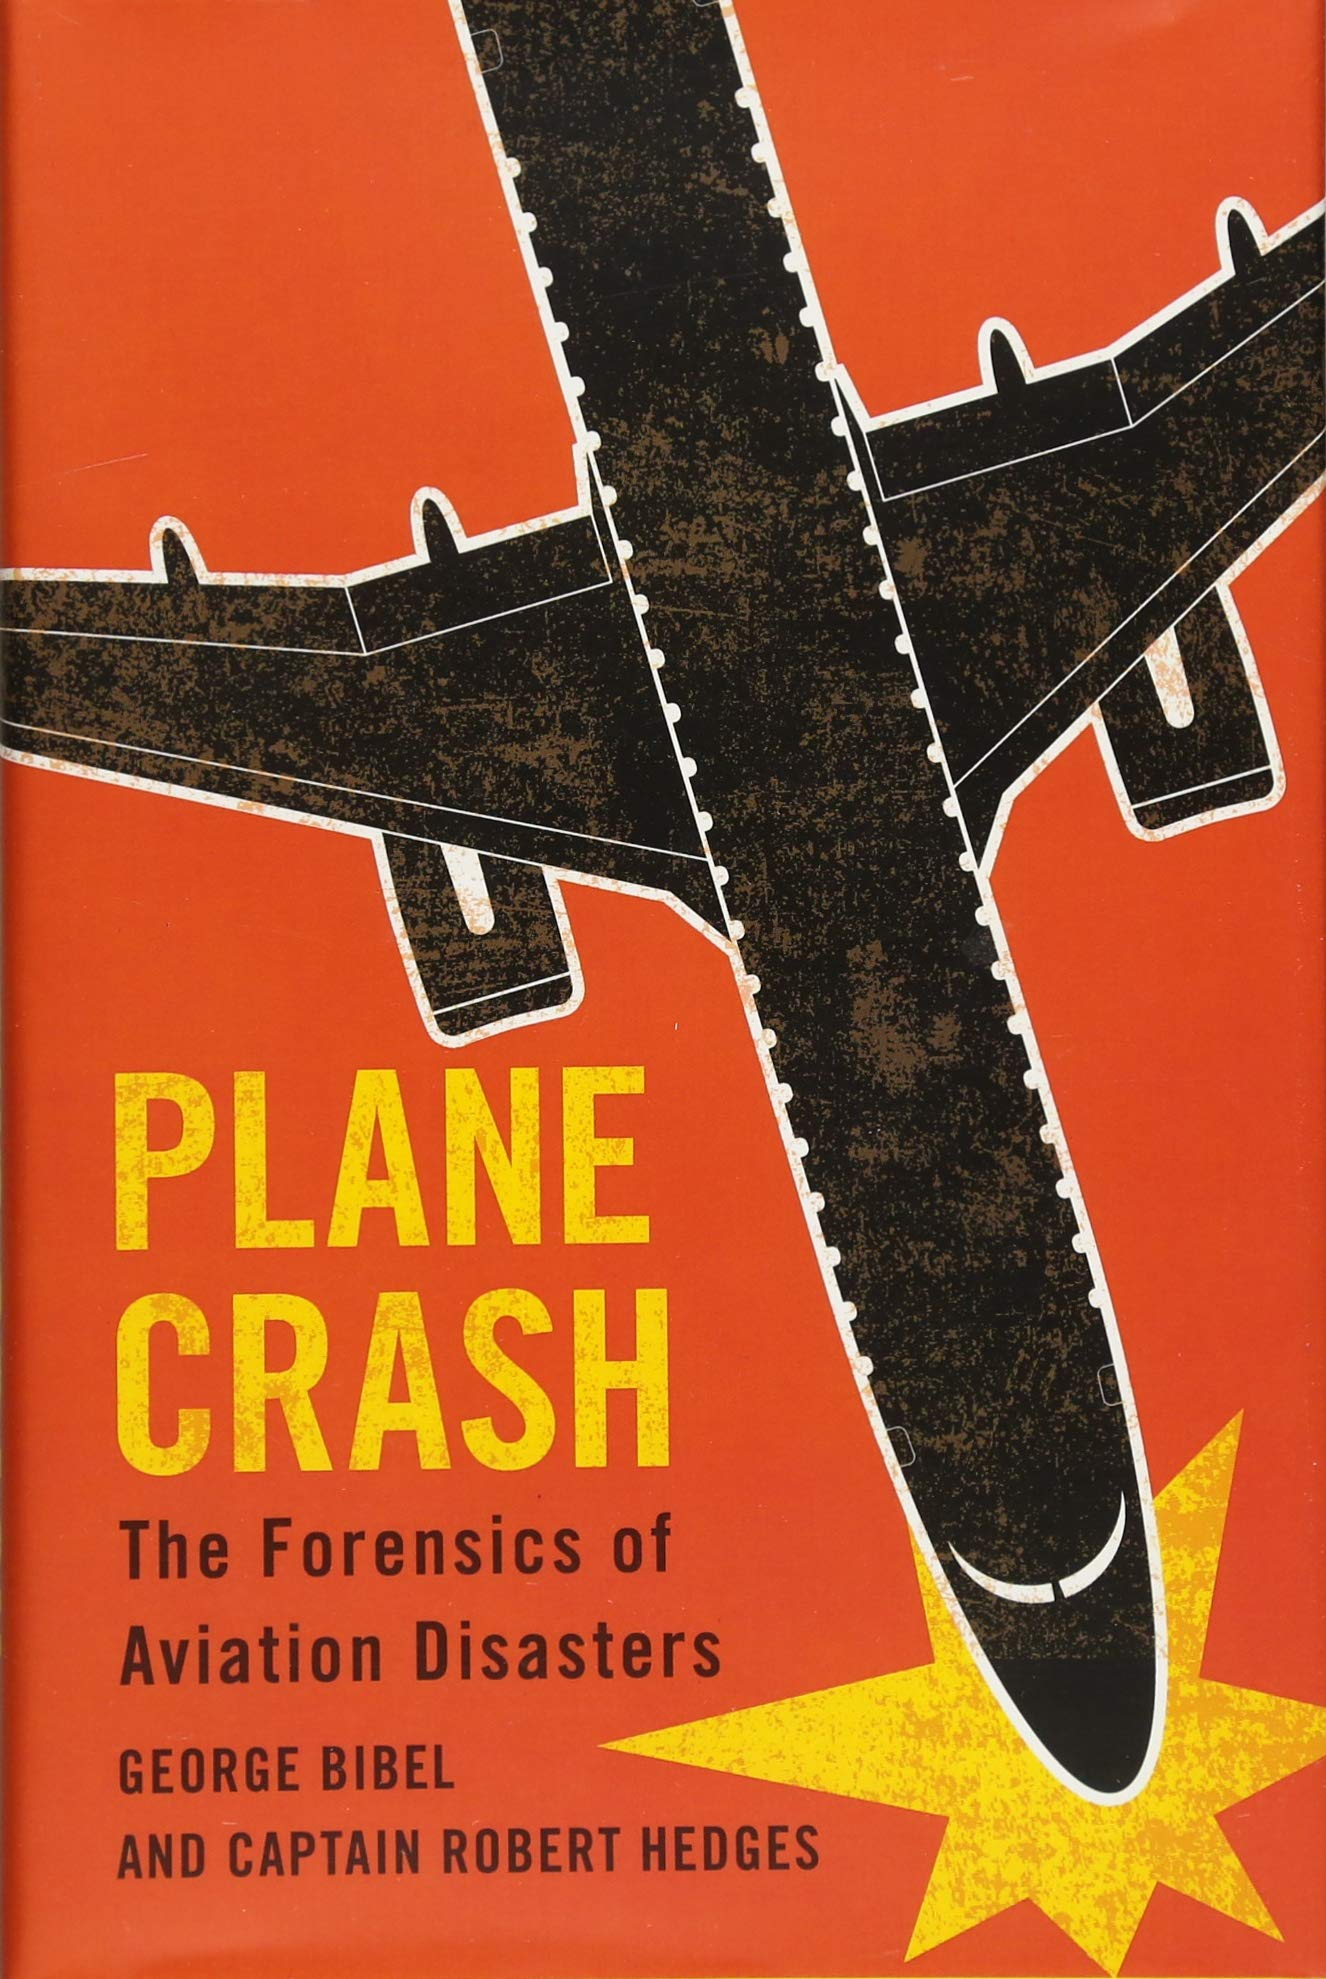 Plane Crash: The Forensics of Aviation Disasters: George